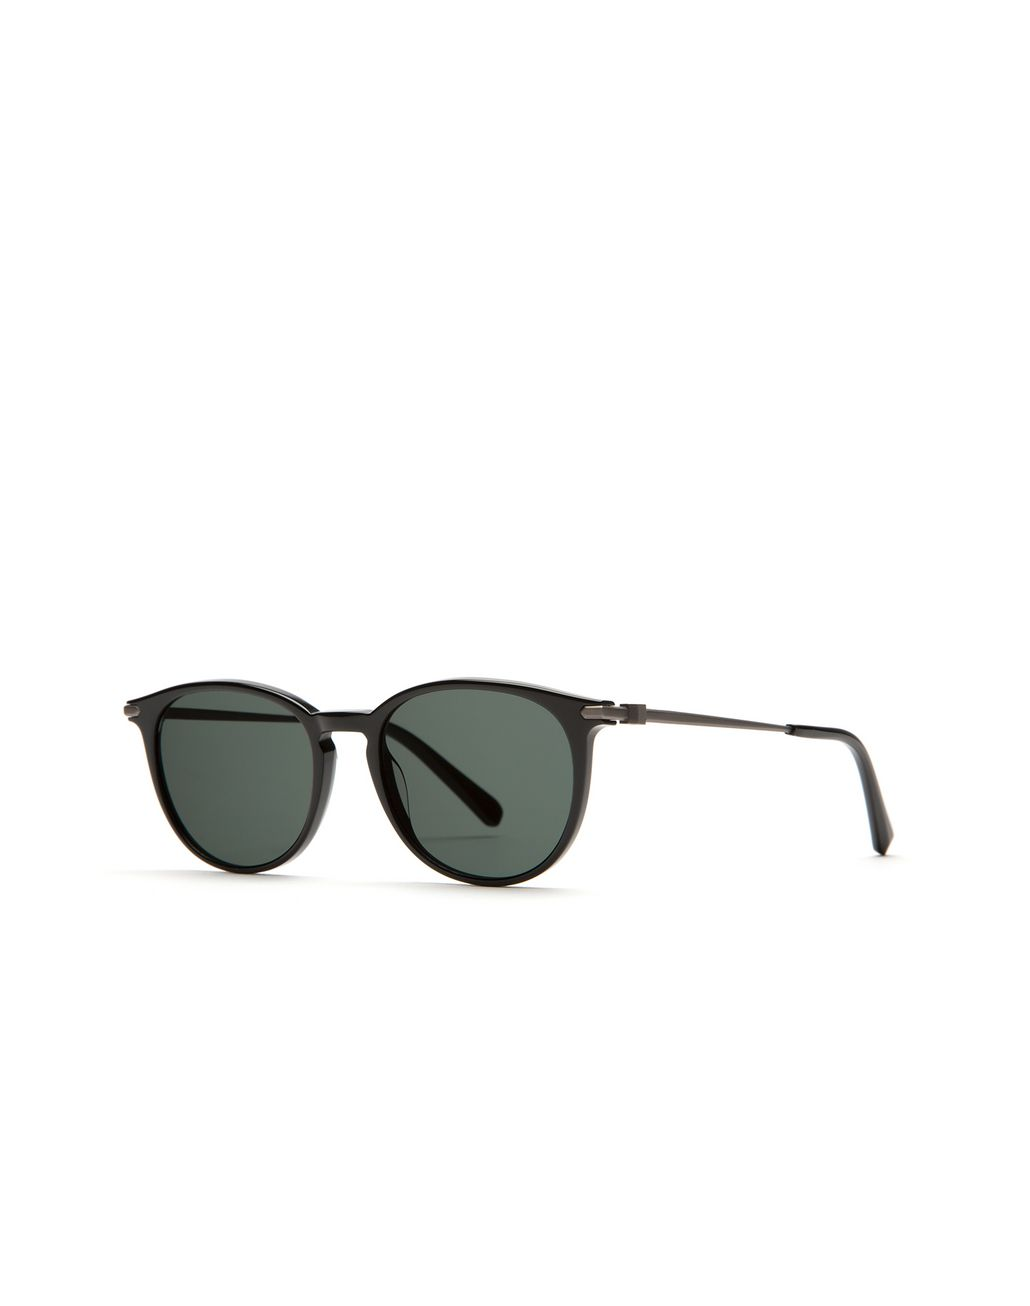 BRIONI Shiny Black Retro Pantos Sunglasses Sunglasses Man r